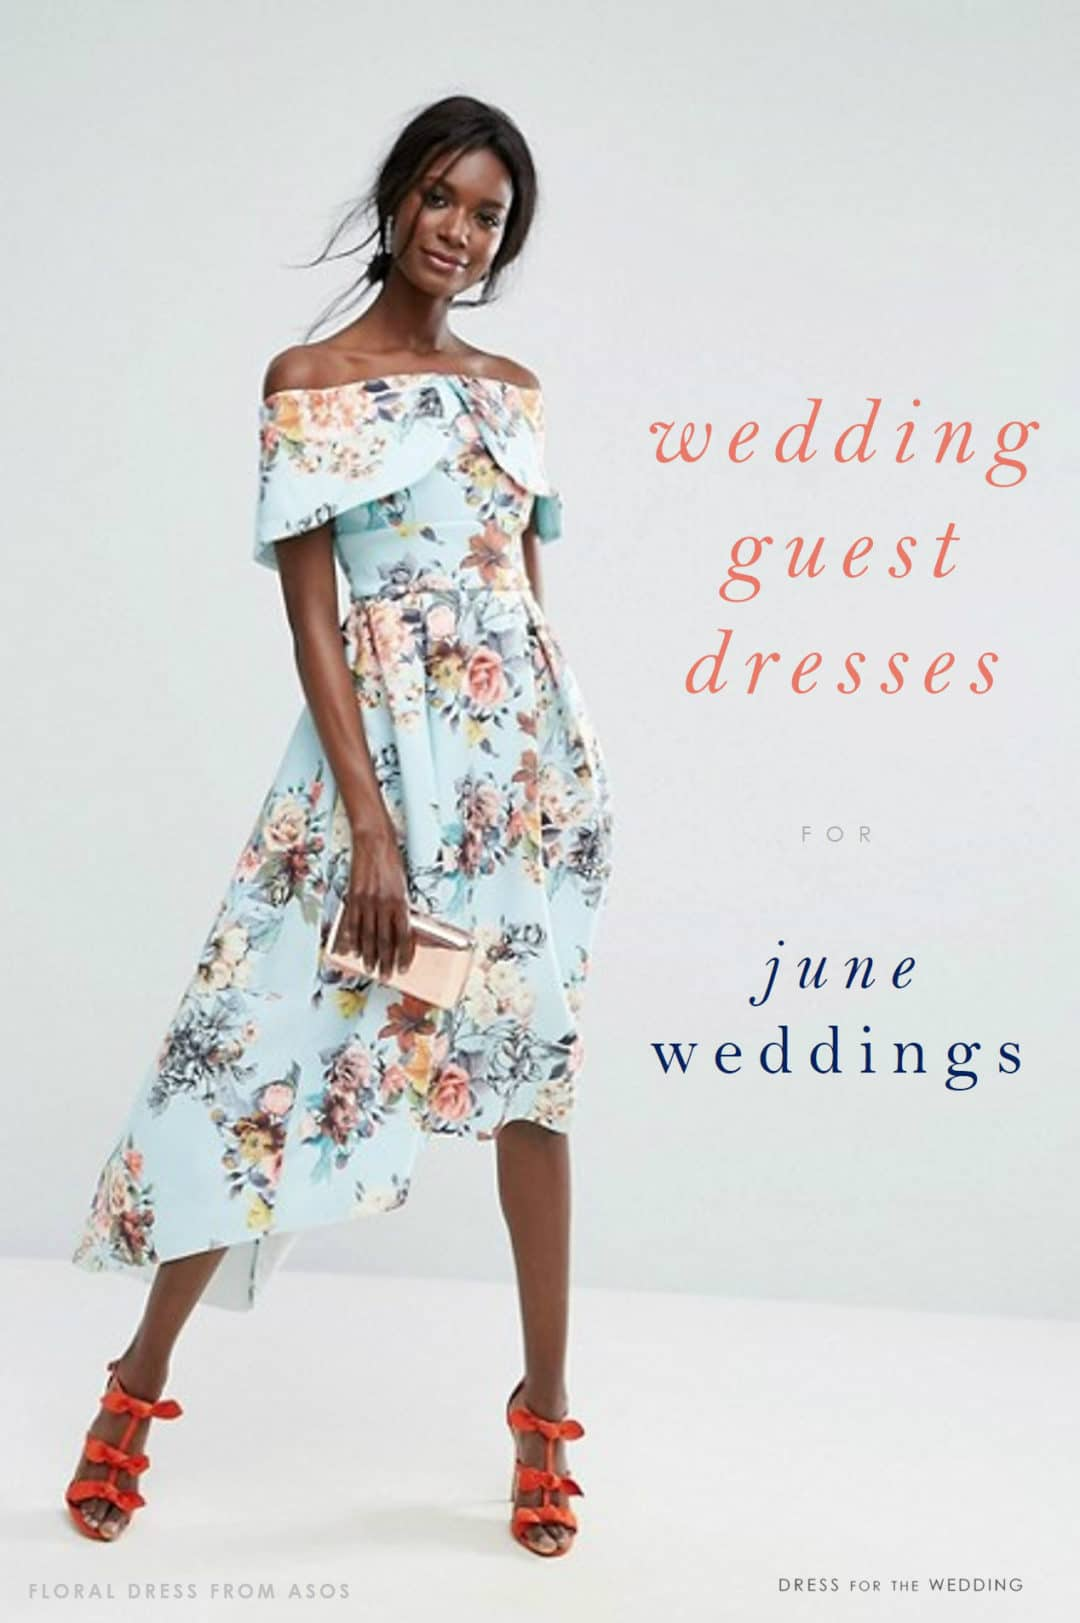 20 on trend dresses for june 2017 wedding guests dress for Wedding guest dresses size 20